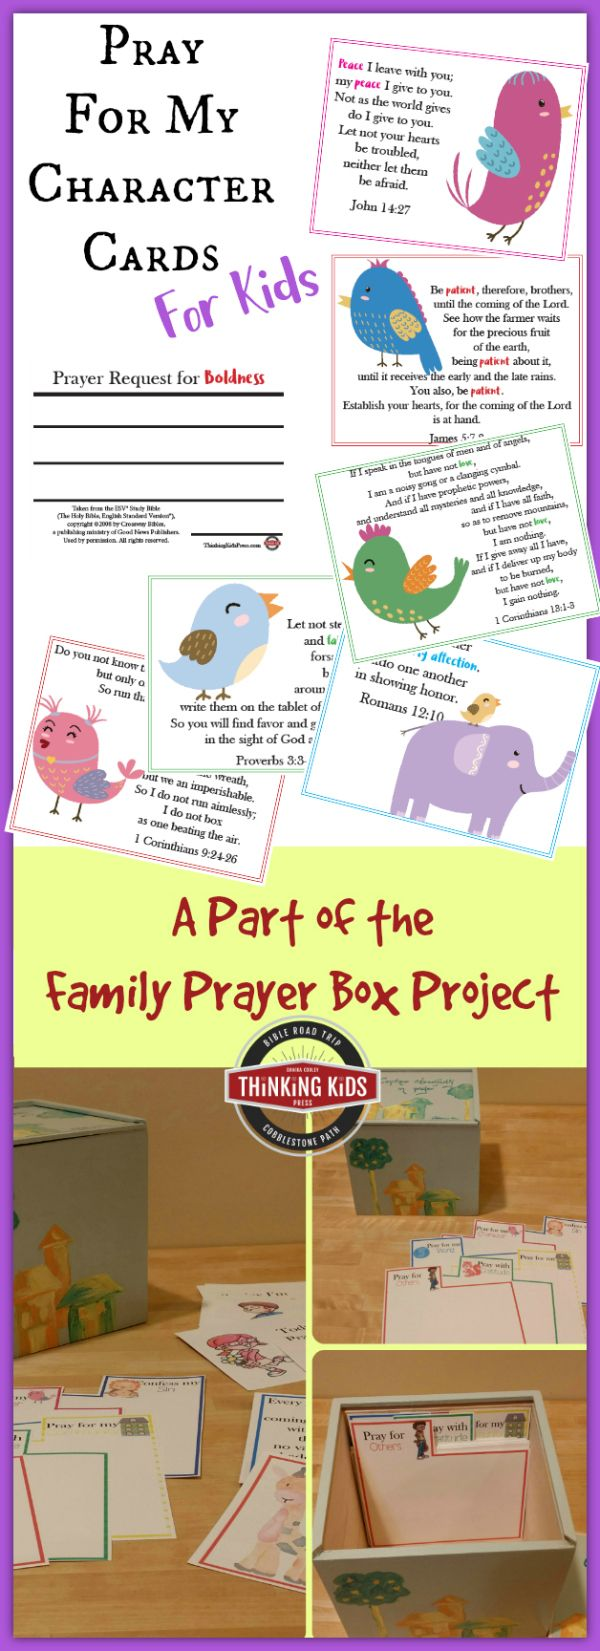 Pray for My Character Cards for Kids: A part of the Family Prayer Box Project